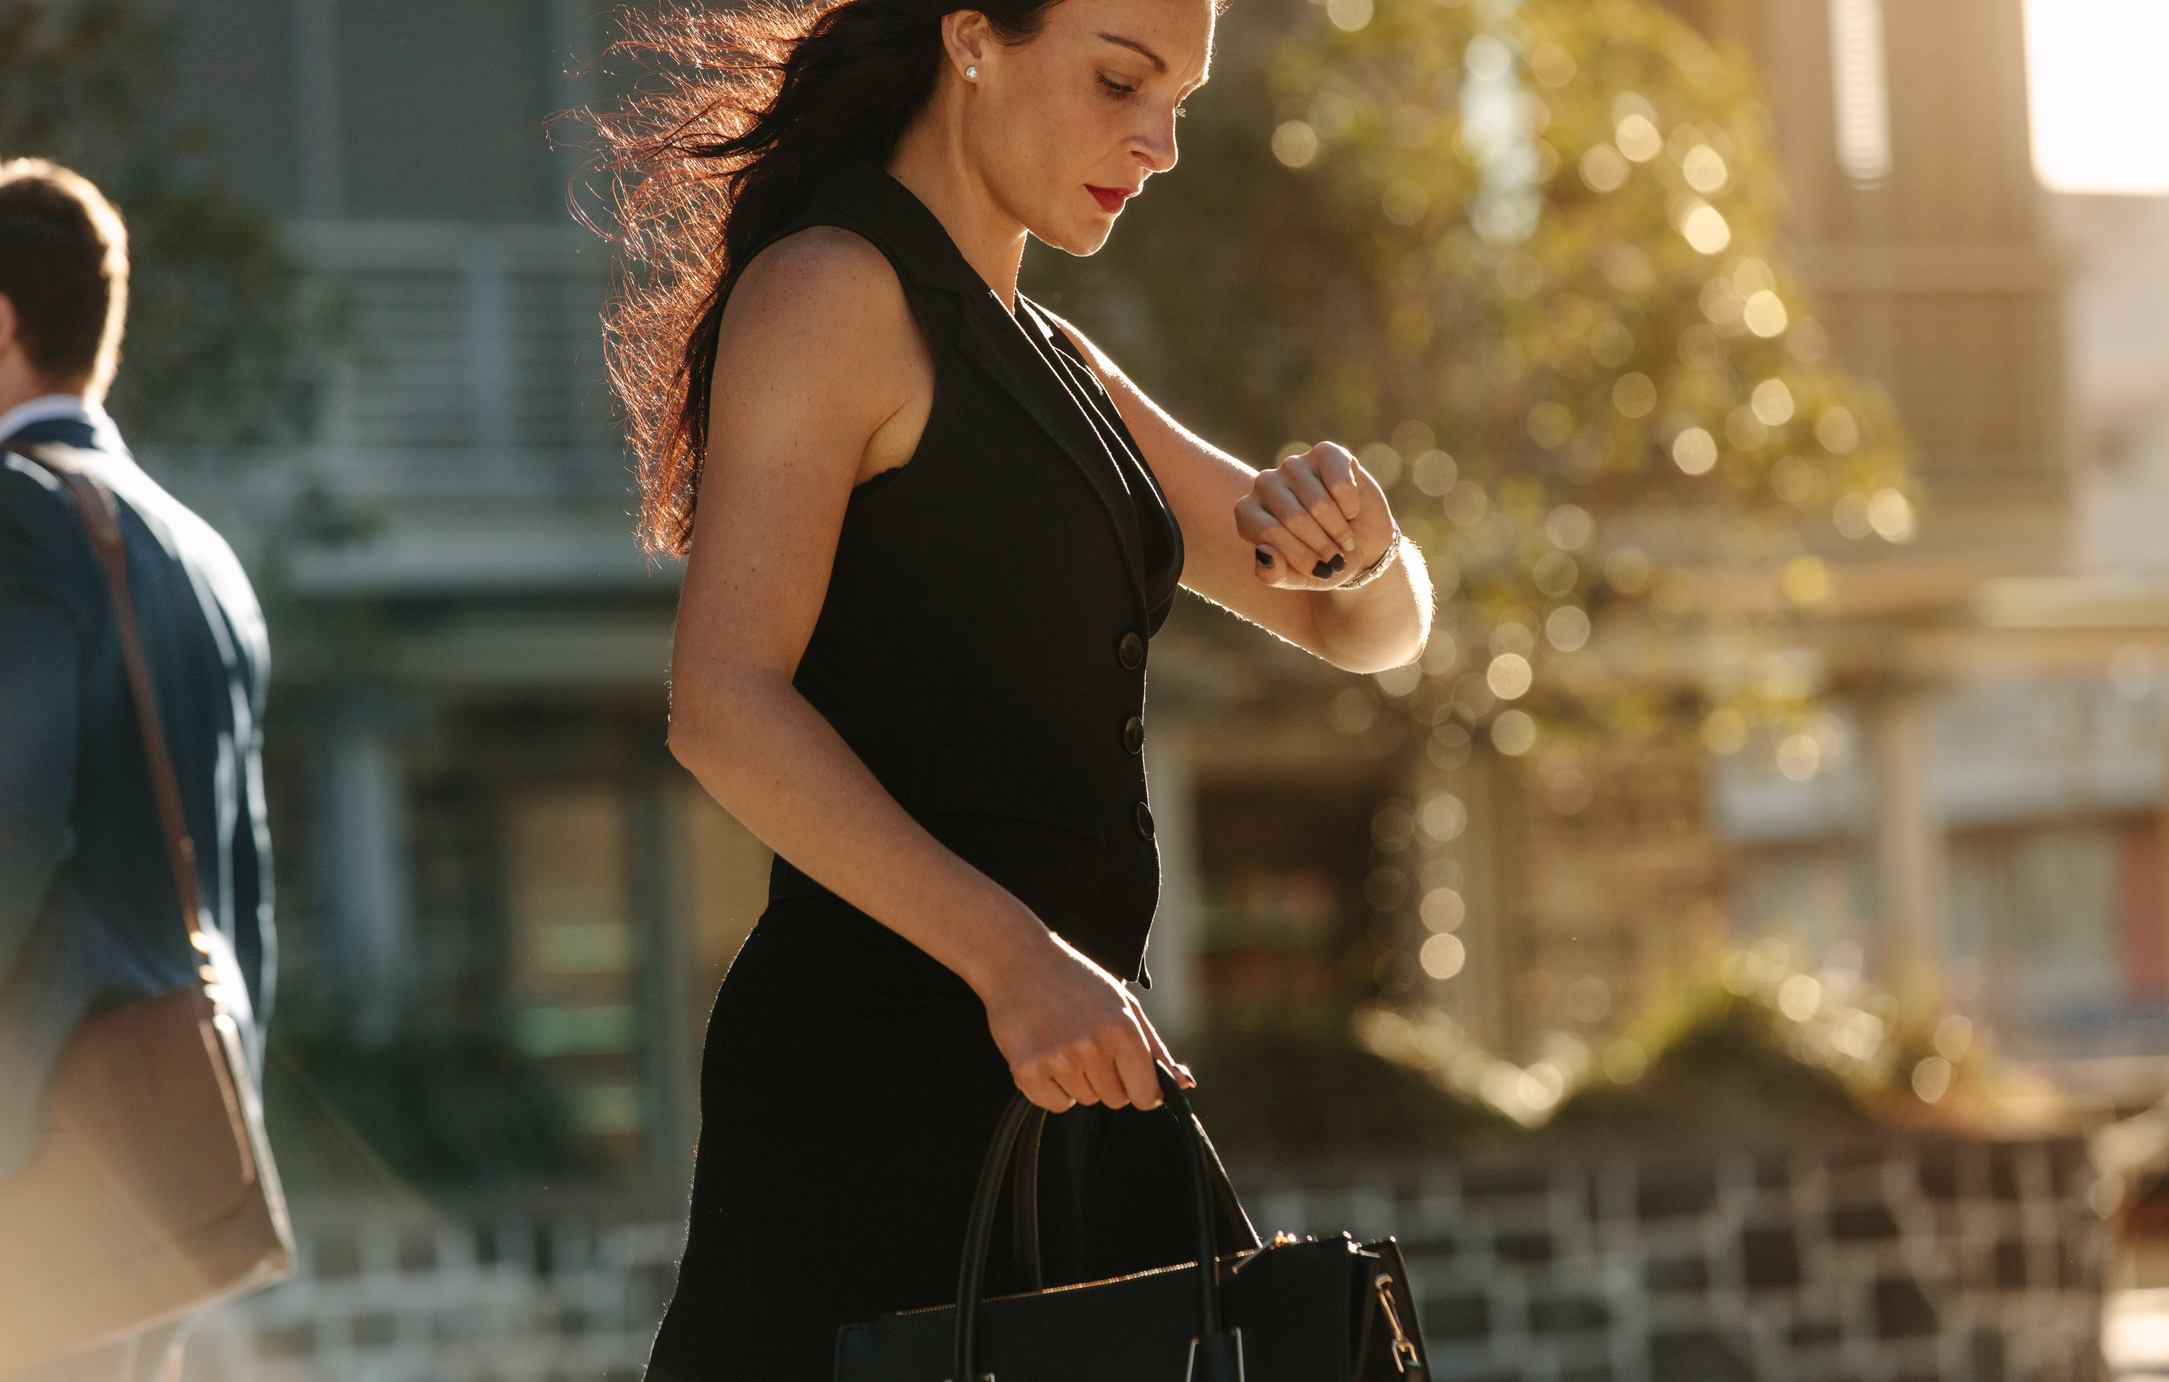 Woman looking at her wrist watch while commuting to office in the morning carrying her bag. Office going people walking on a street in the morning.